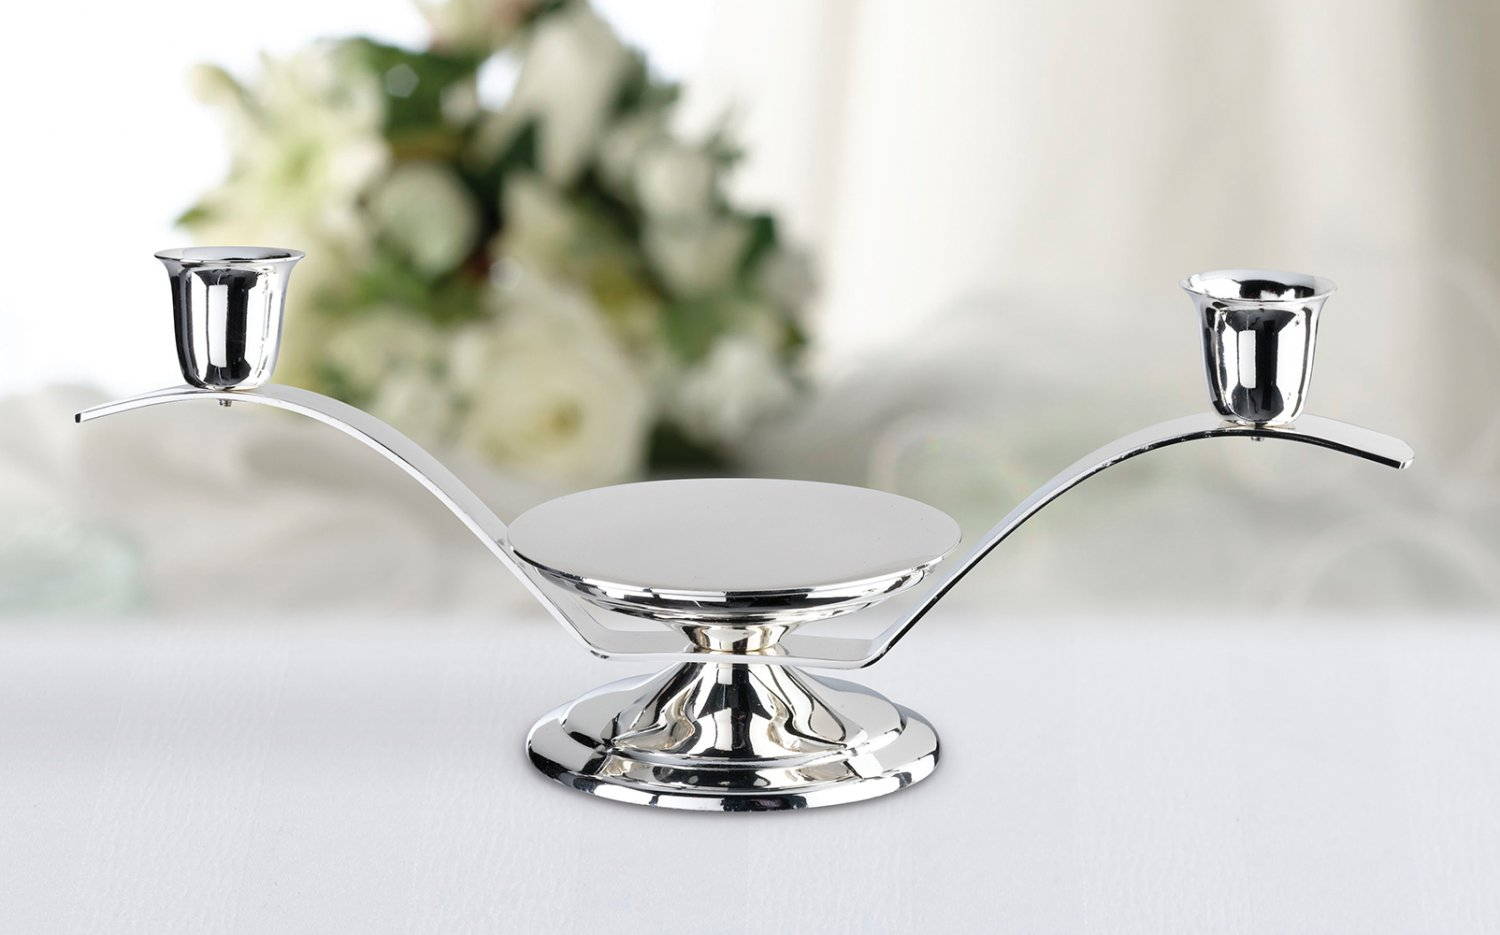 3 In 1 Silver Candle Holder